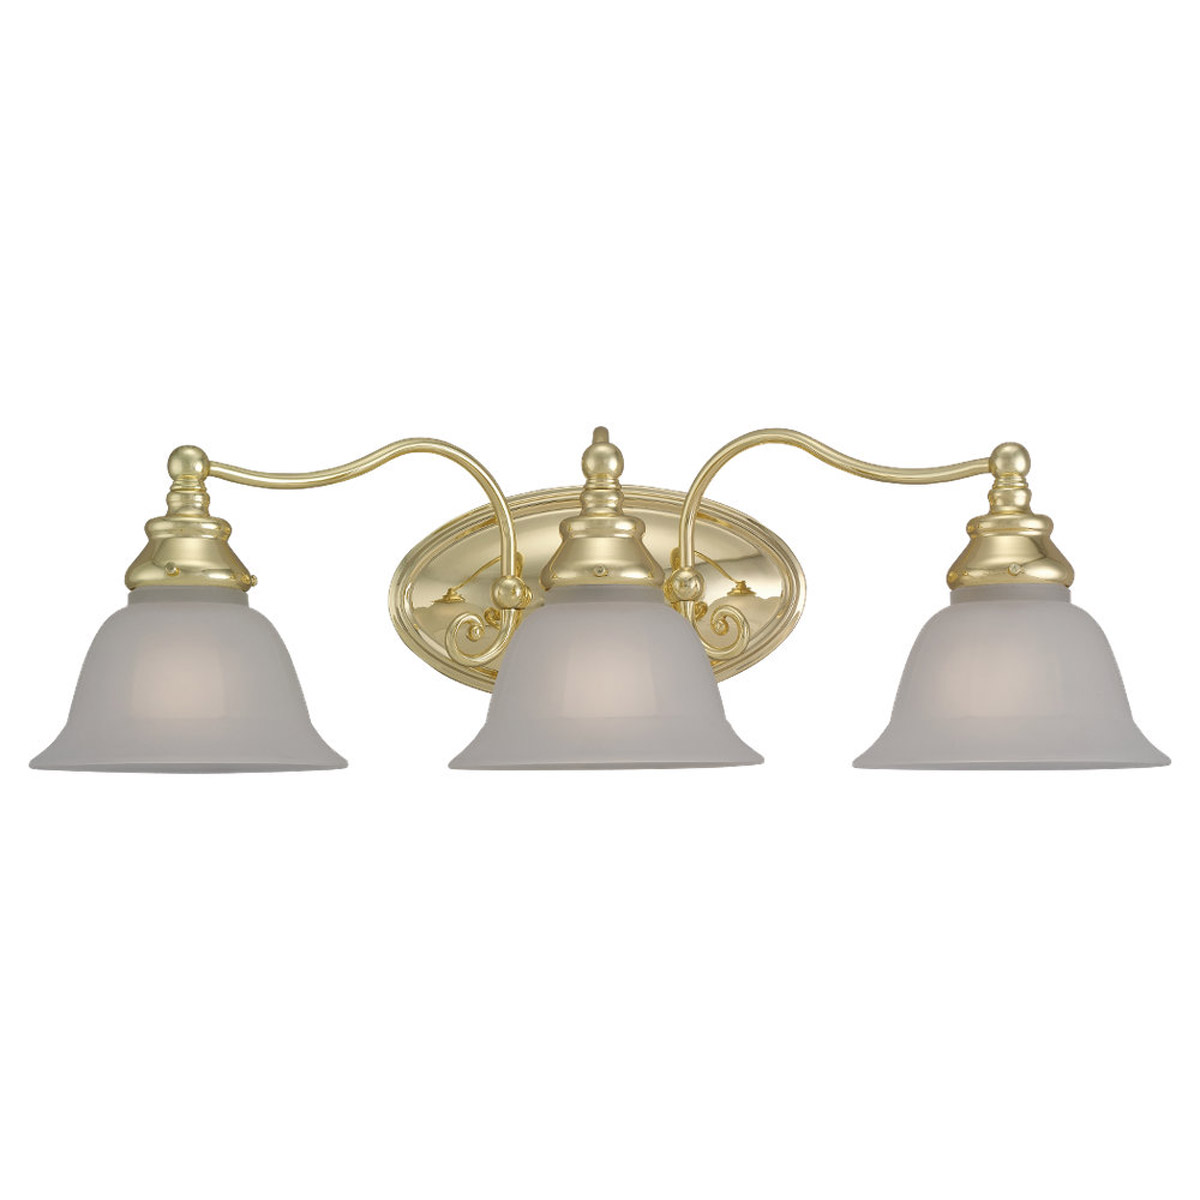 Sea Gull Lighting Canterbury 3 Light Bath Vanity in Polished Brass 44652-02 photo